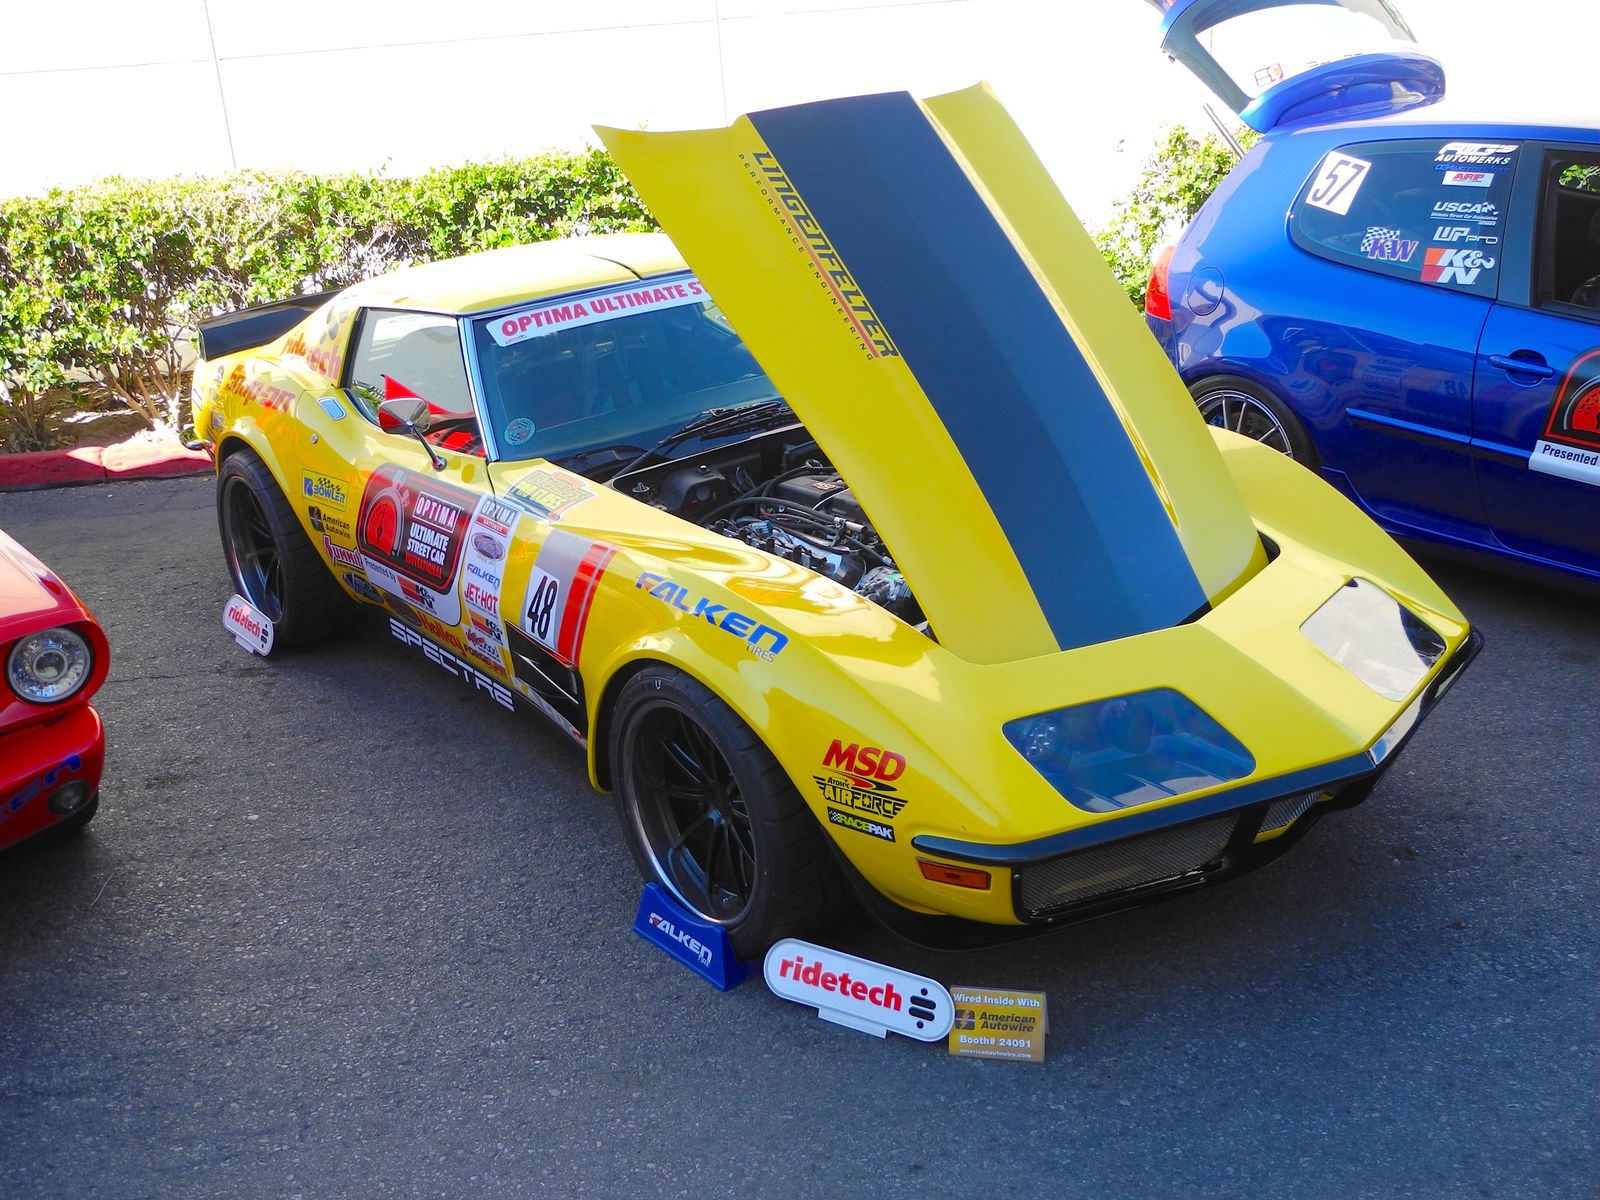 1972 Chevrolet Corvette | RideTech's 48 Hour Corvette at the 2015 SEMA Show on Forgeline GT3C Concave Wheels